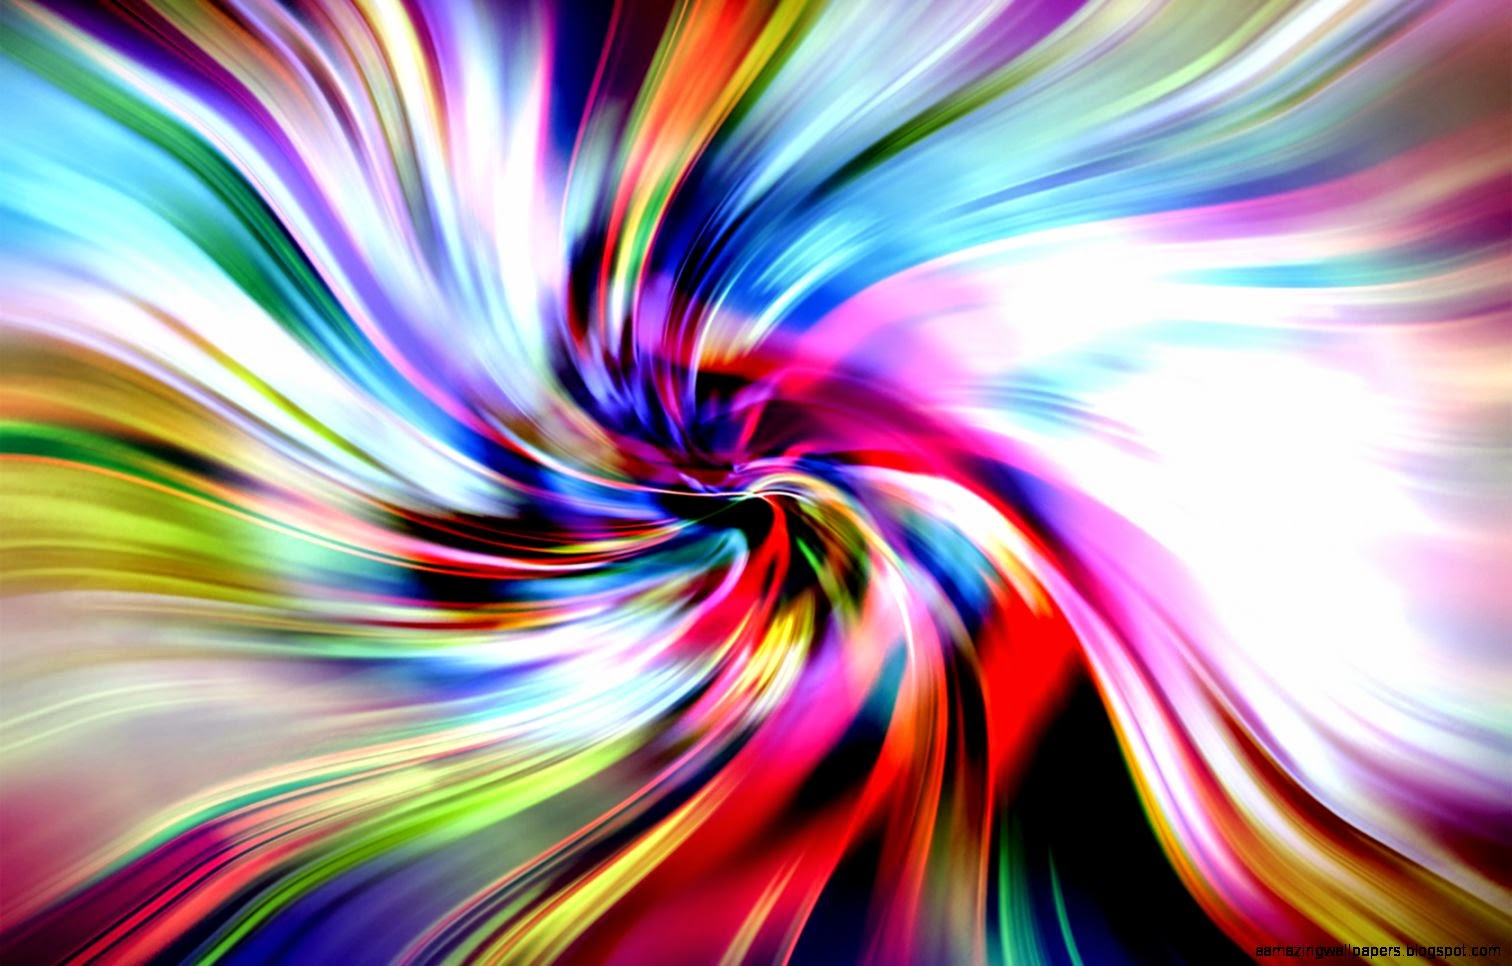 3D Colorful Abstract Background Hd Cool 7 HD Wallpapers 1512x966